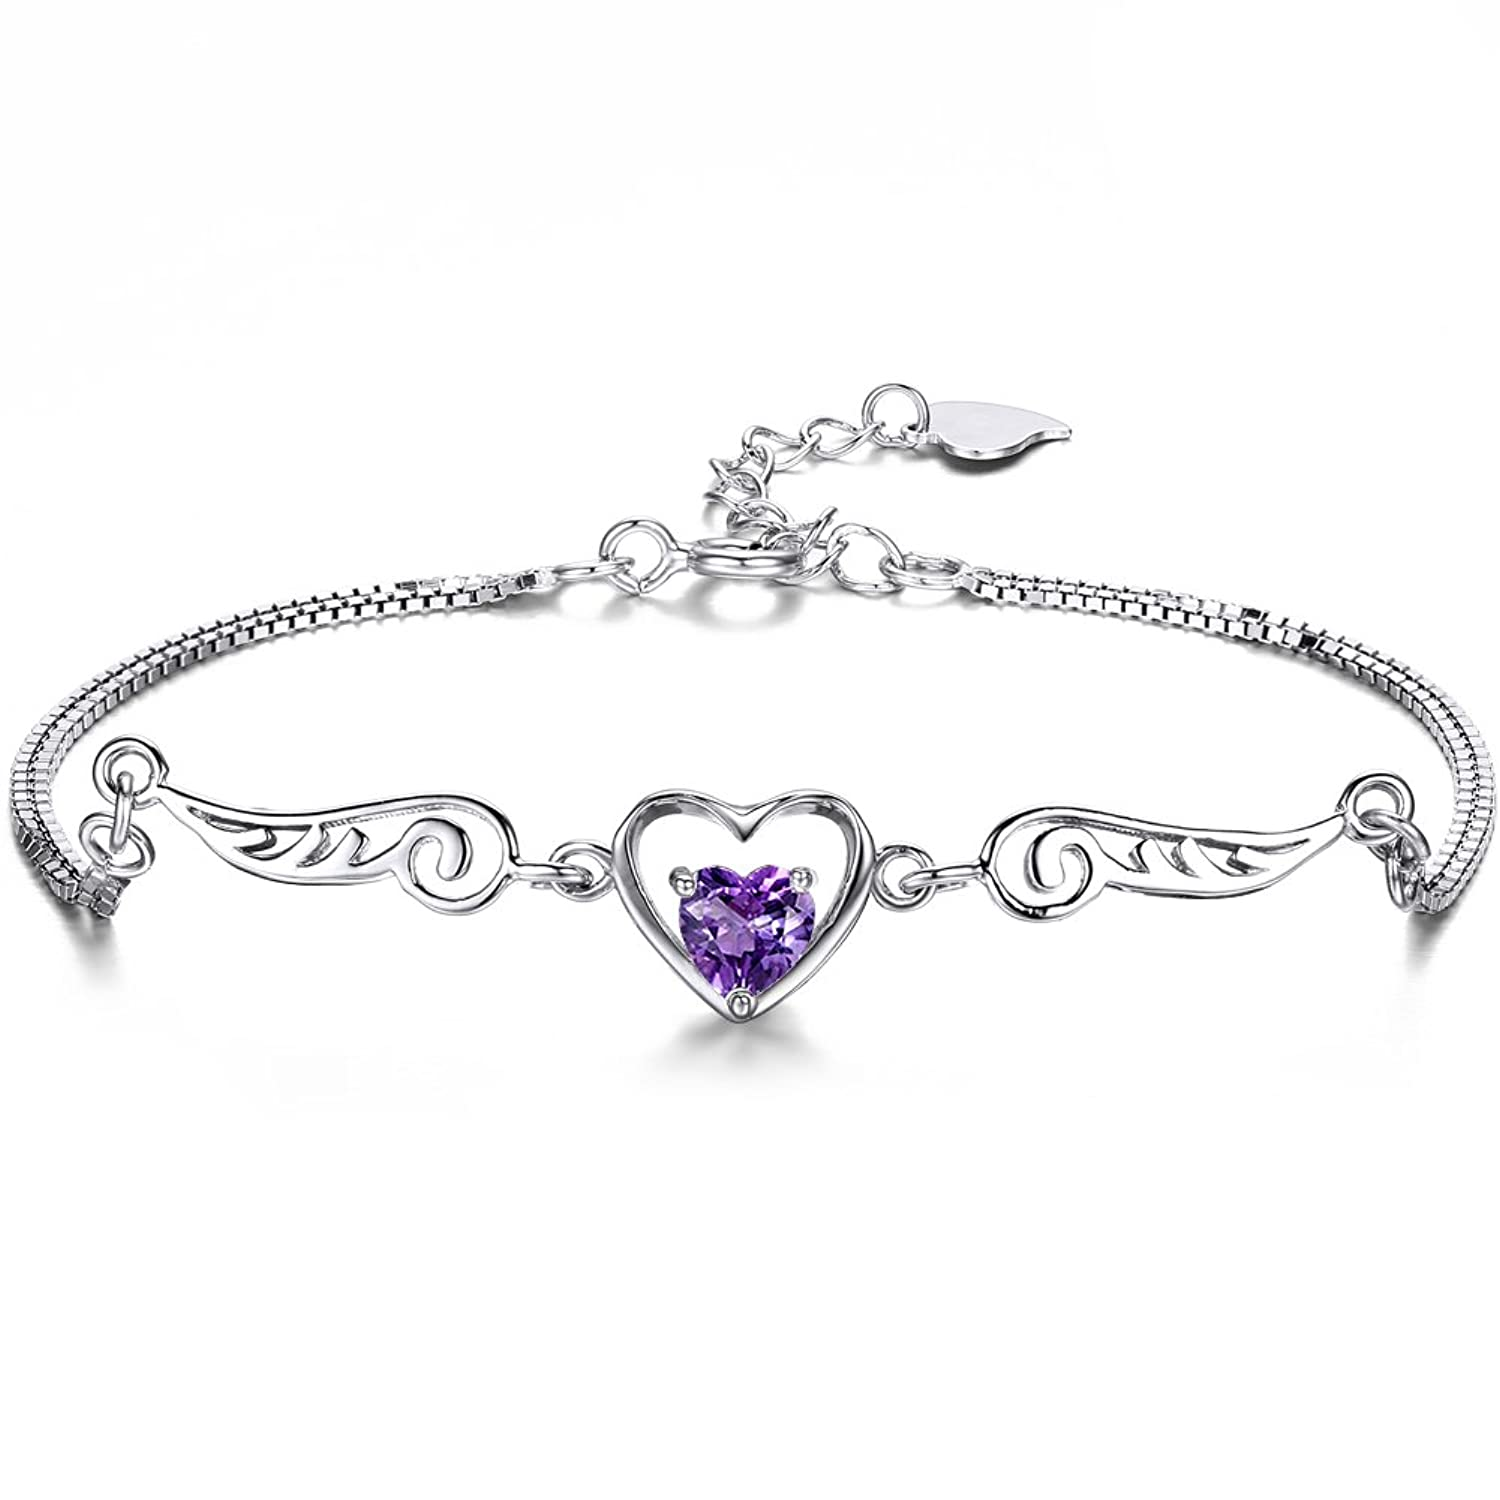 ZENI 925 Silver Women Bracelet Love Heart Angel Wings with 3A 5mm Cubic Zirconia, Exquisite Gift Package (Purple)♥Mother's Day Gifts♥